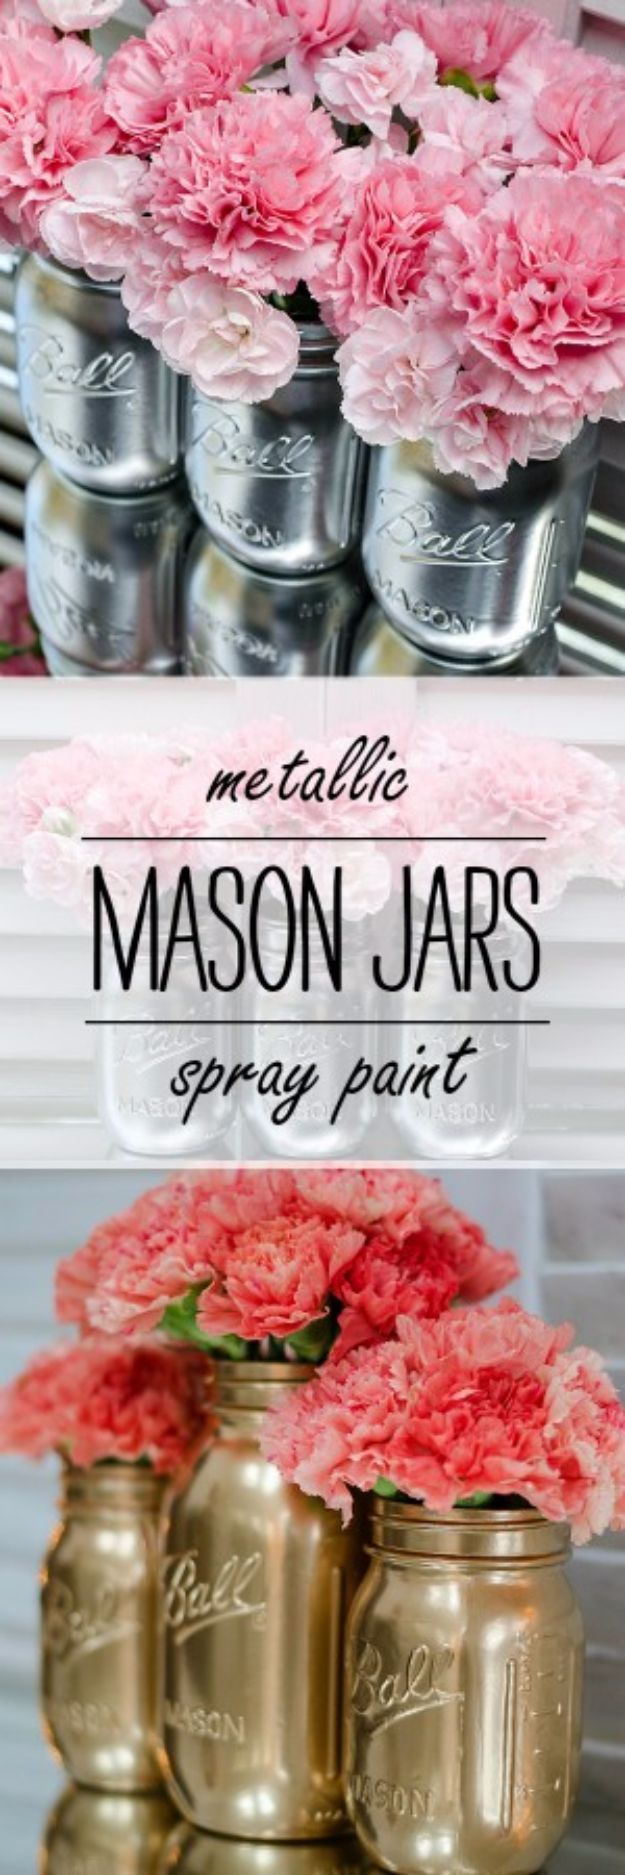 1175 best images about mason jar crafts on pinterest for Room decor ideas with mason jars